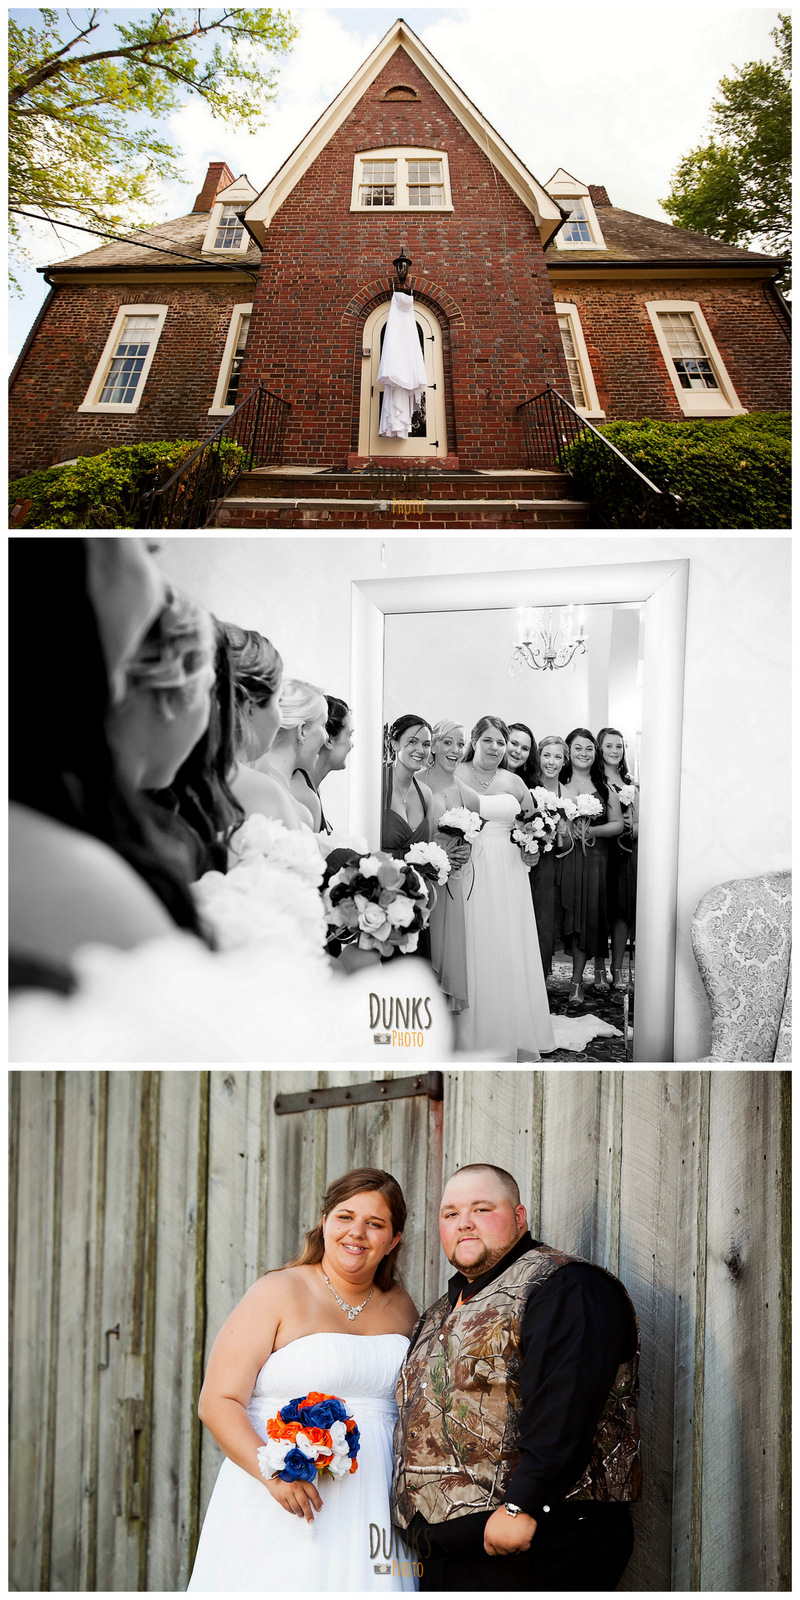 1-2015 dunks photo wedding previews